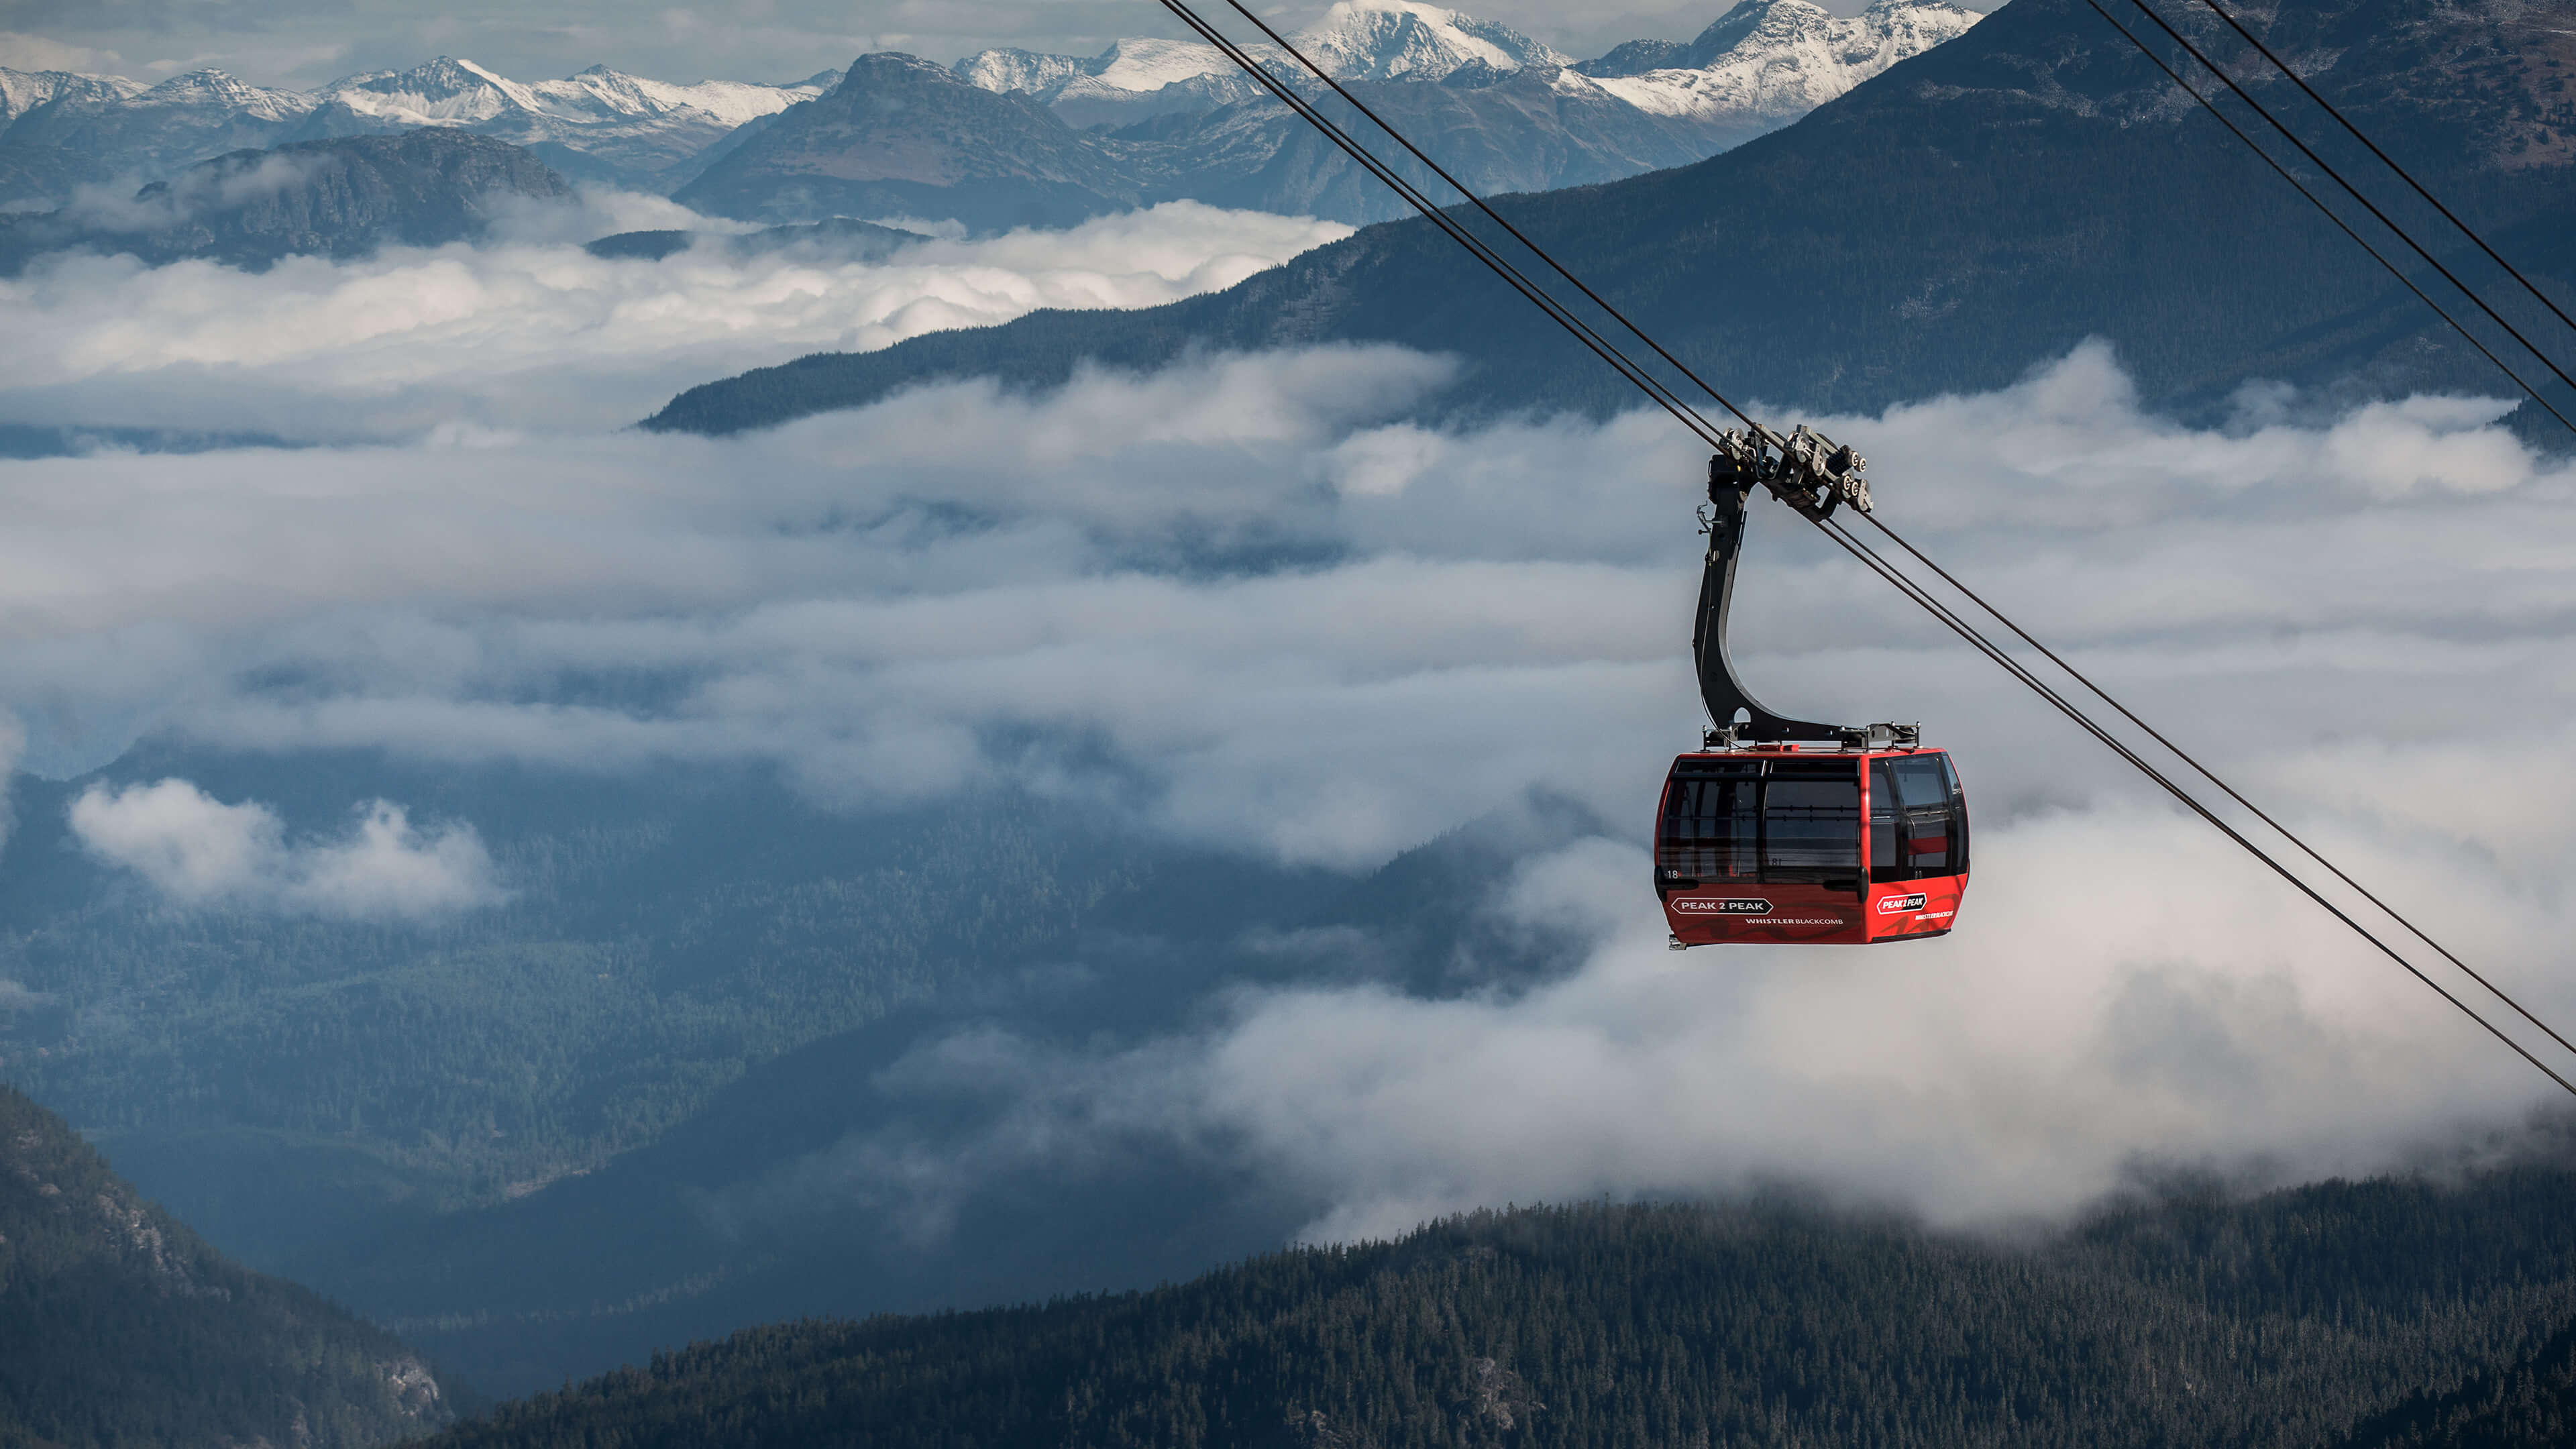 PEAK 2 PEAK Gondola traveling above Whistler, British Columbia